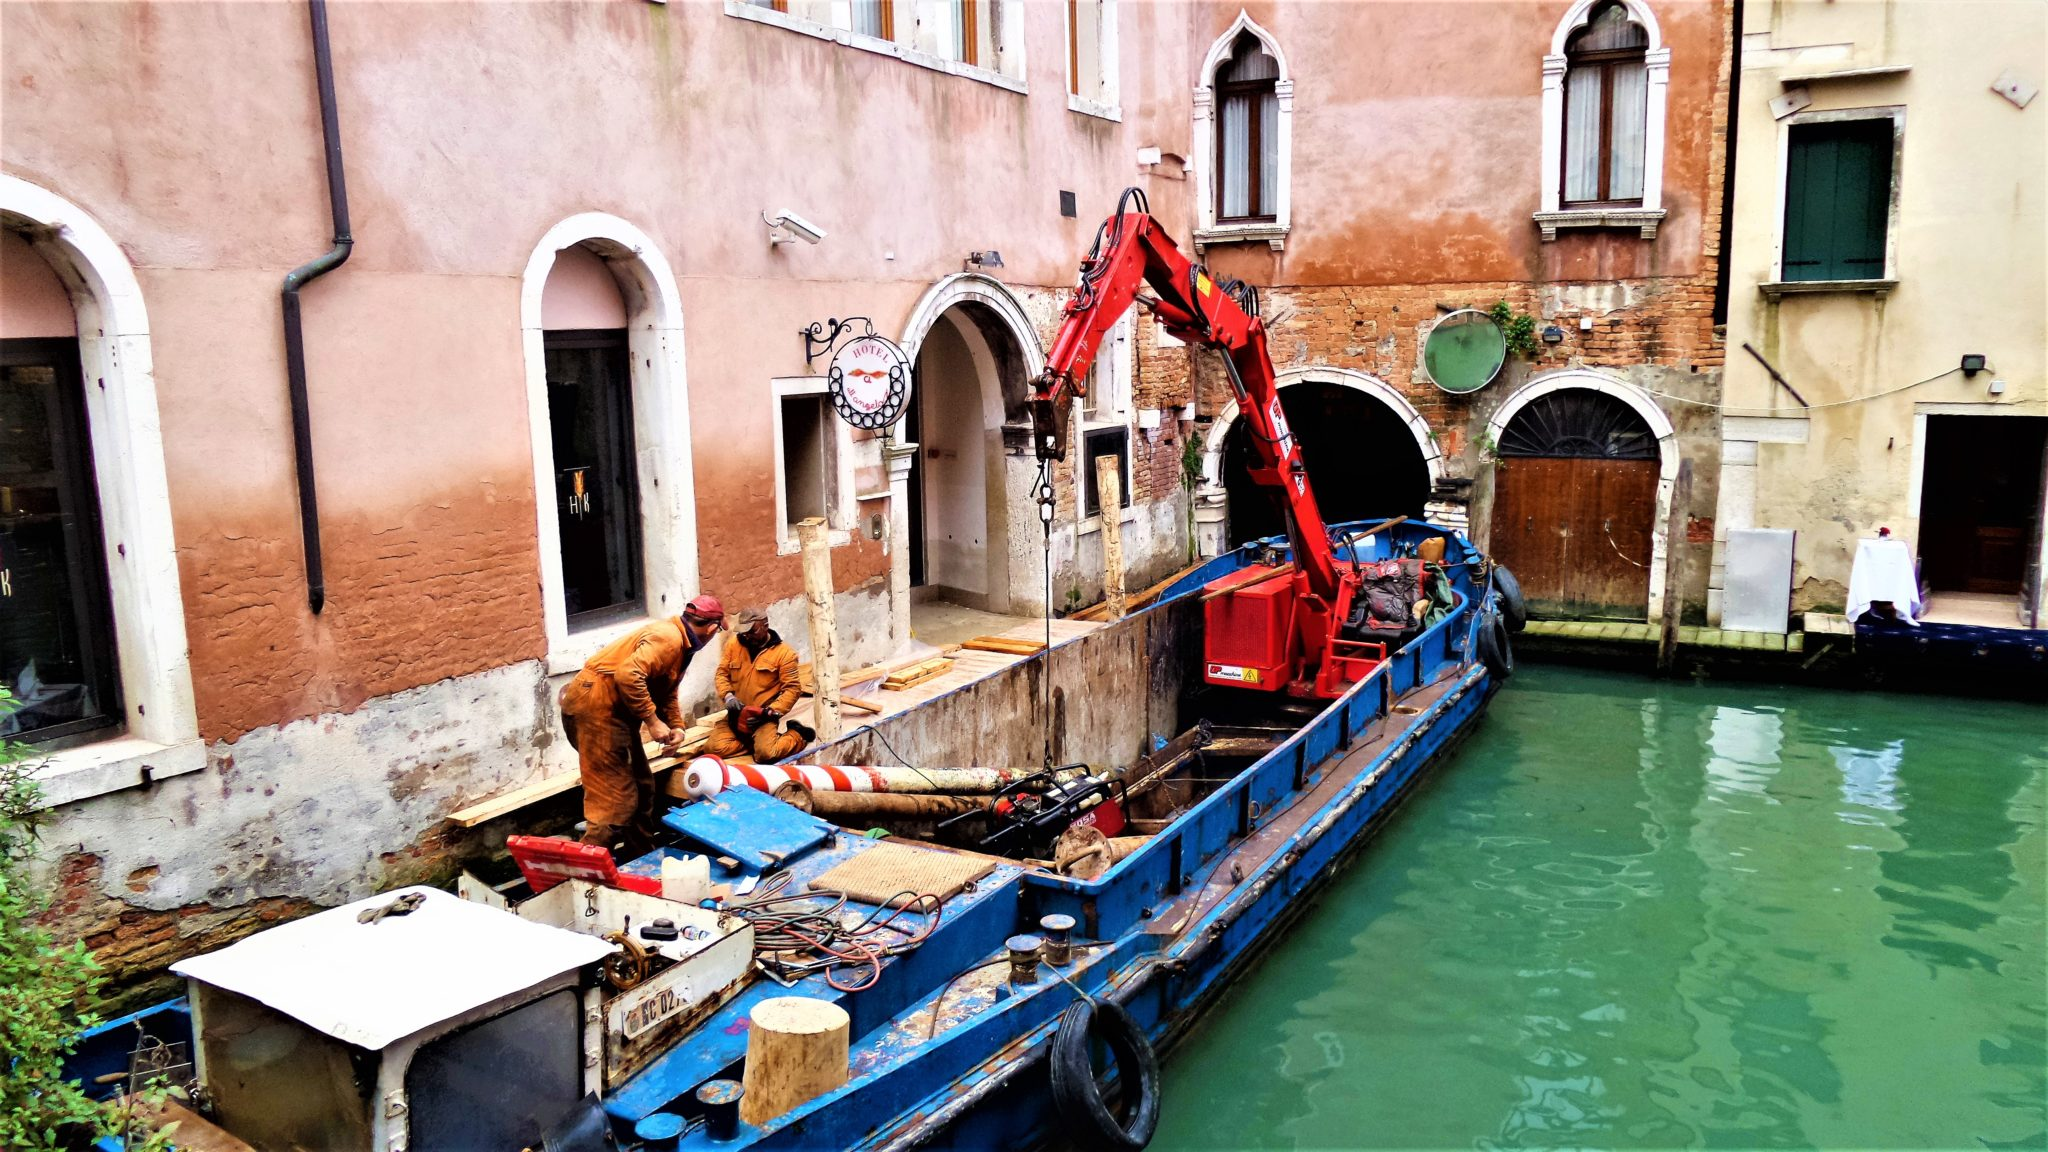 Construction workers, Builders in Venice, Italy